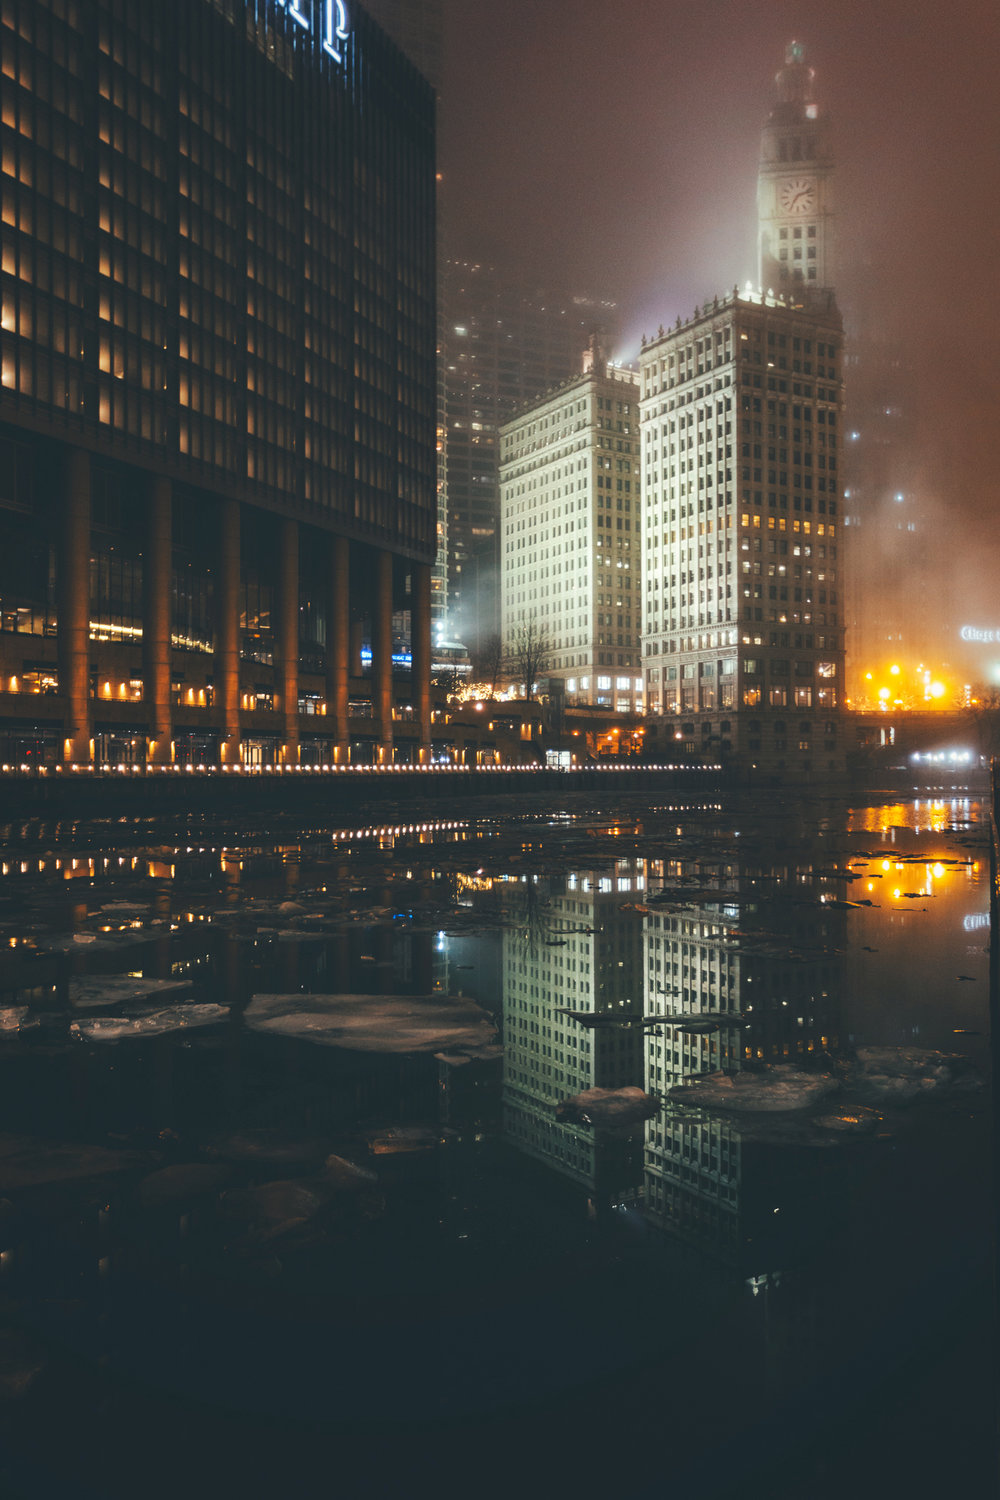 Building reflected in Chicago river with ice and fog